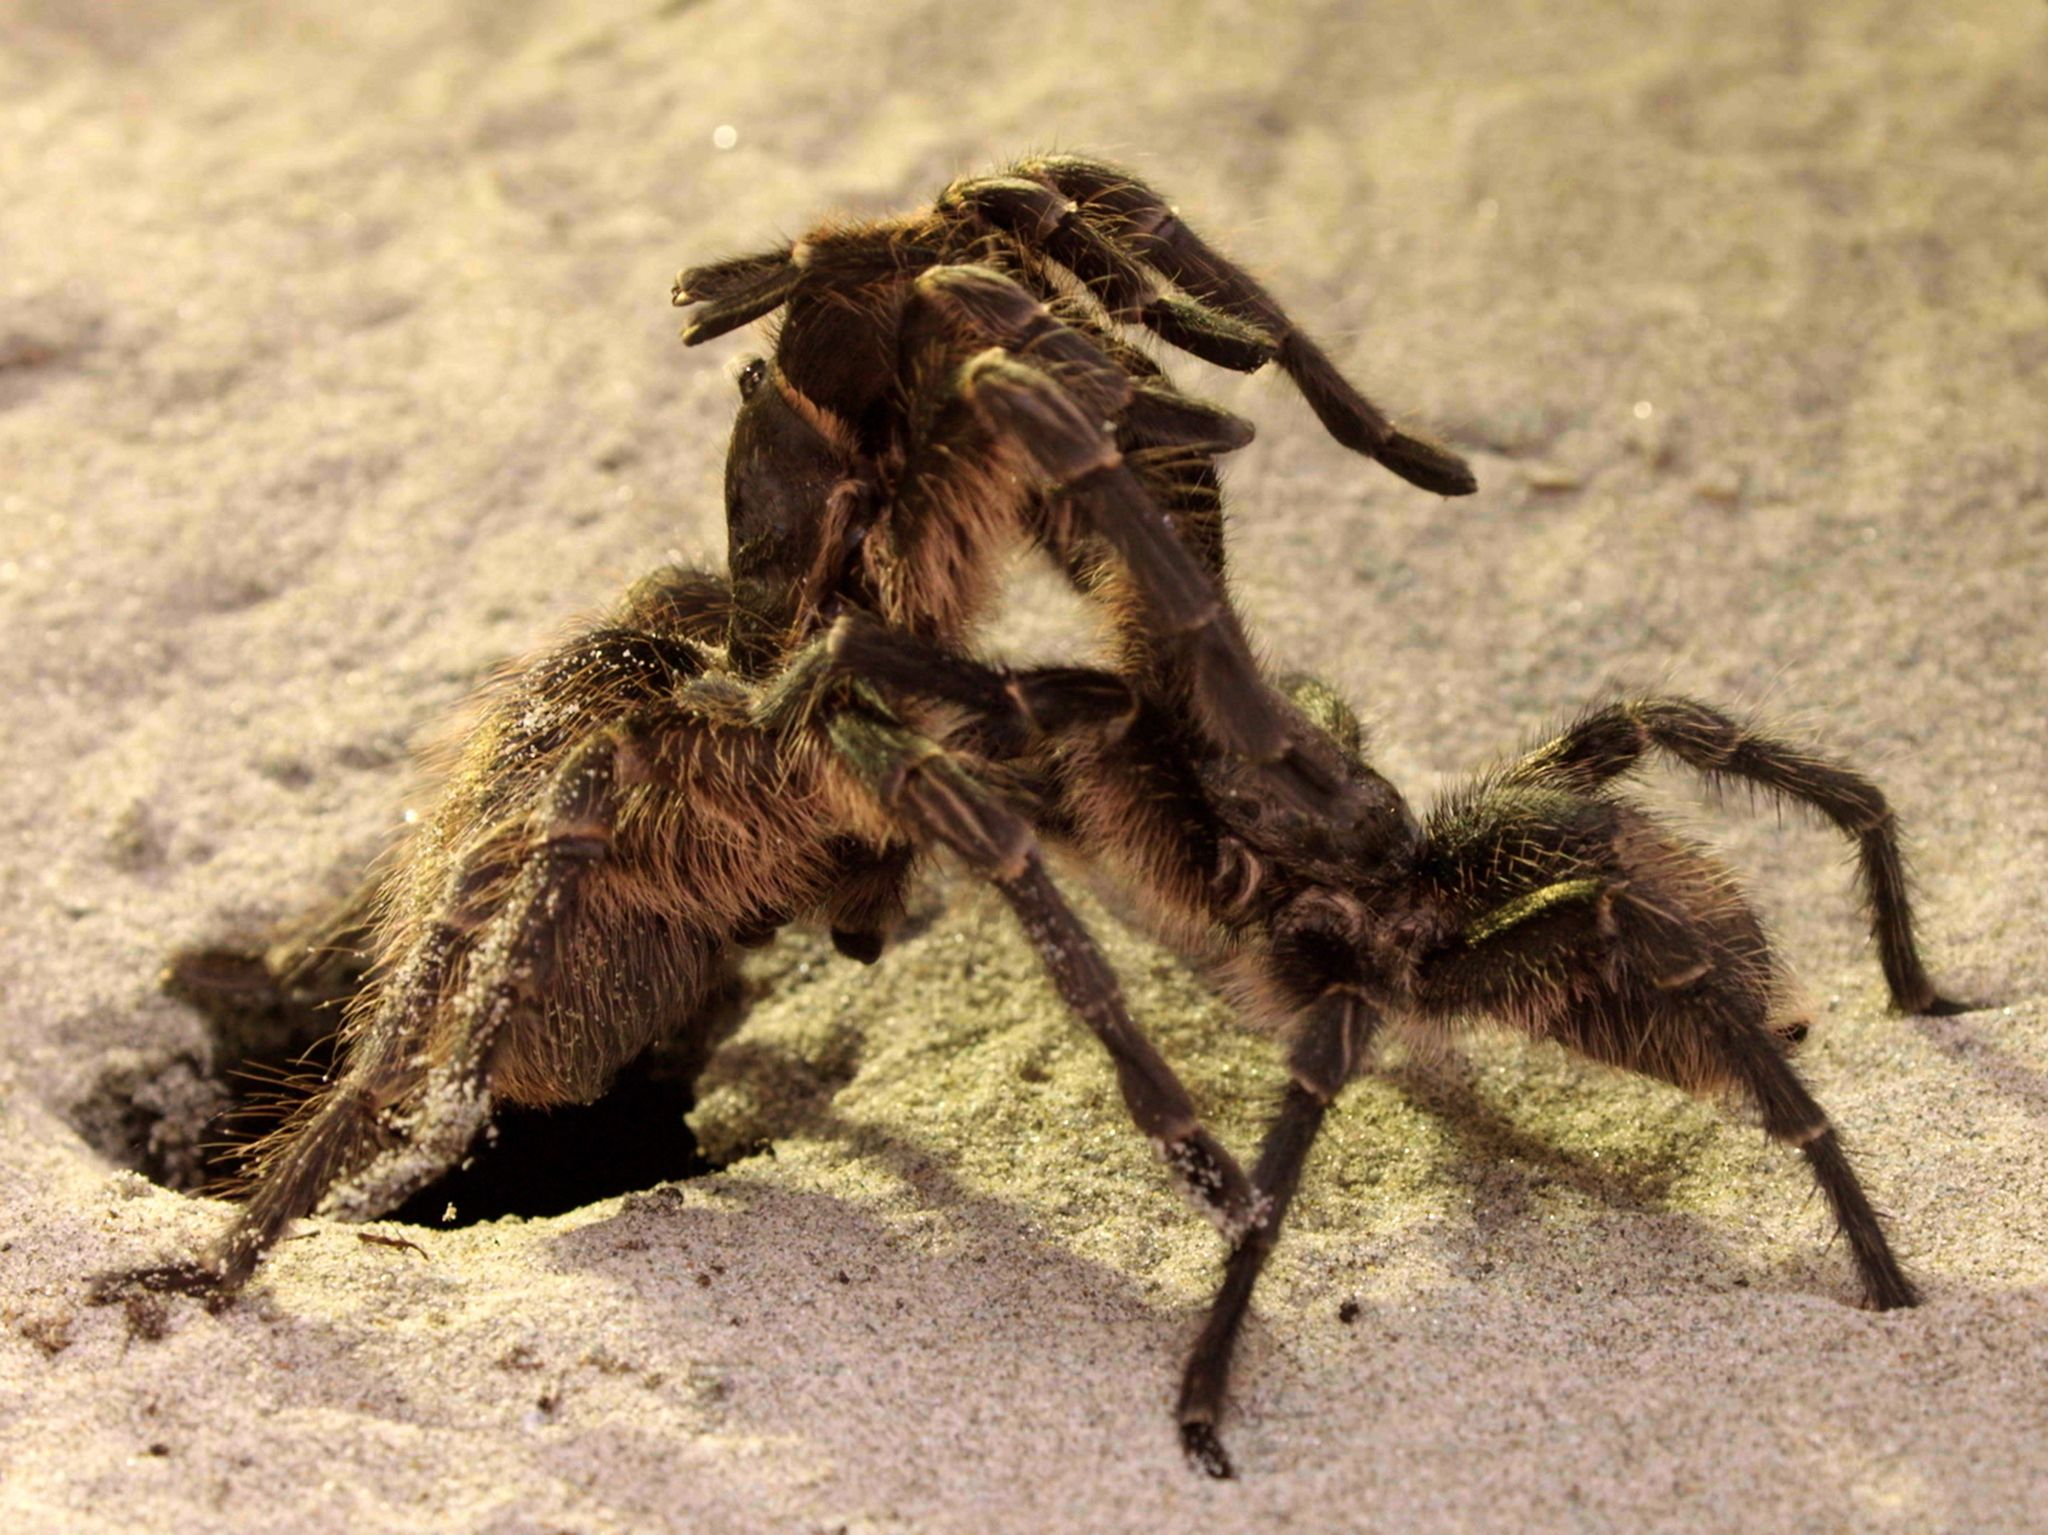 Argentina: Tarantula mating ritual. He strokes her legs gently but quickly in order to subdue... [Photo of the day - June 2017]